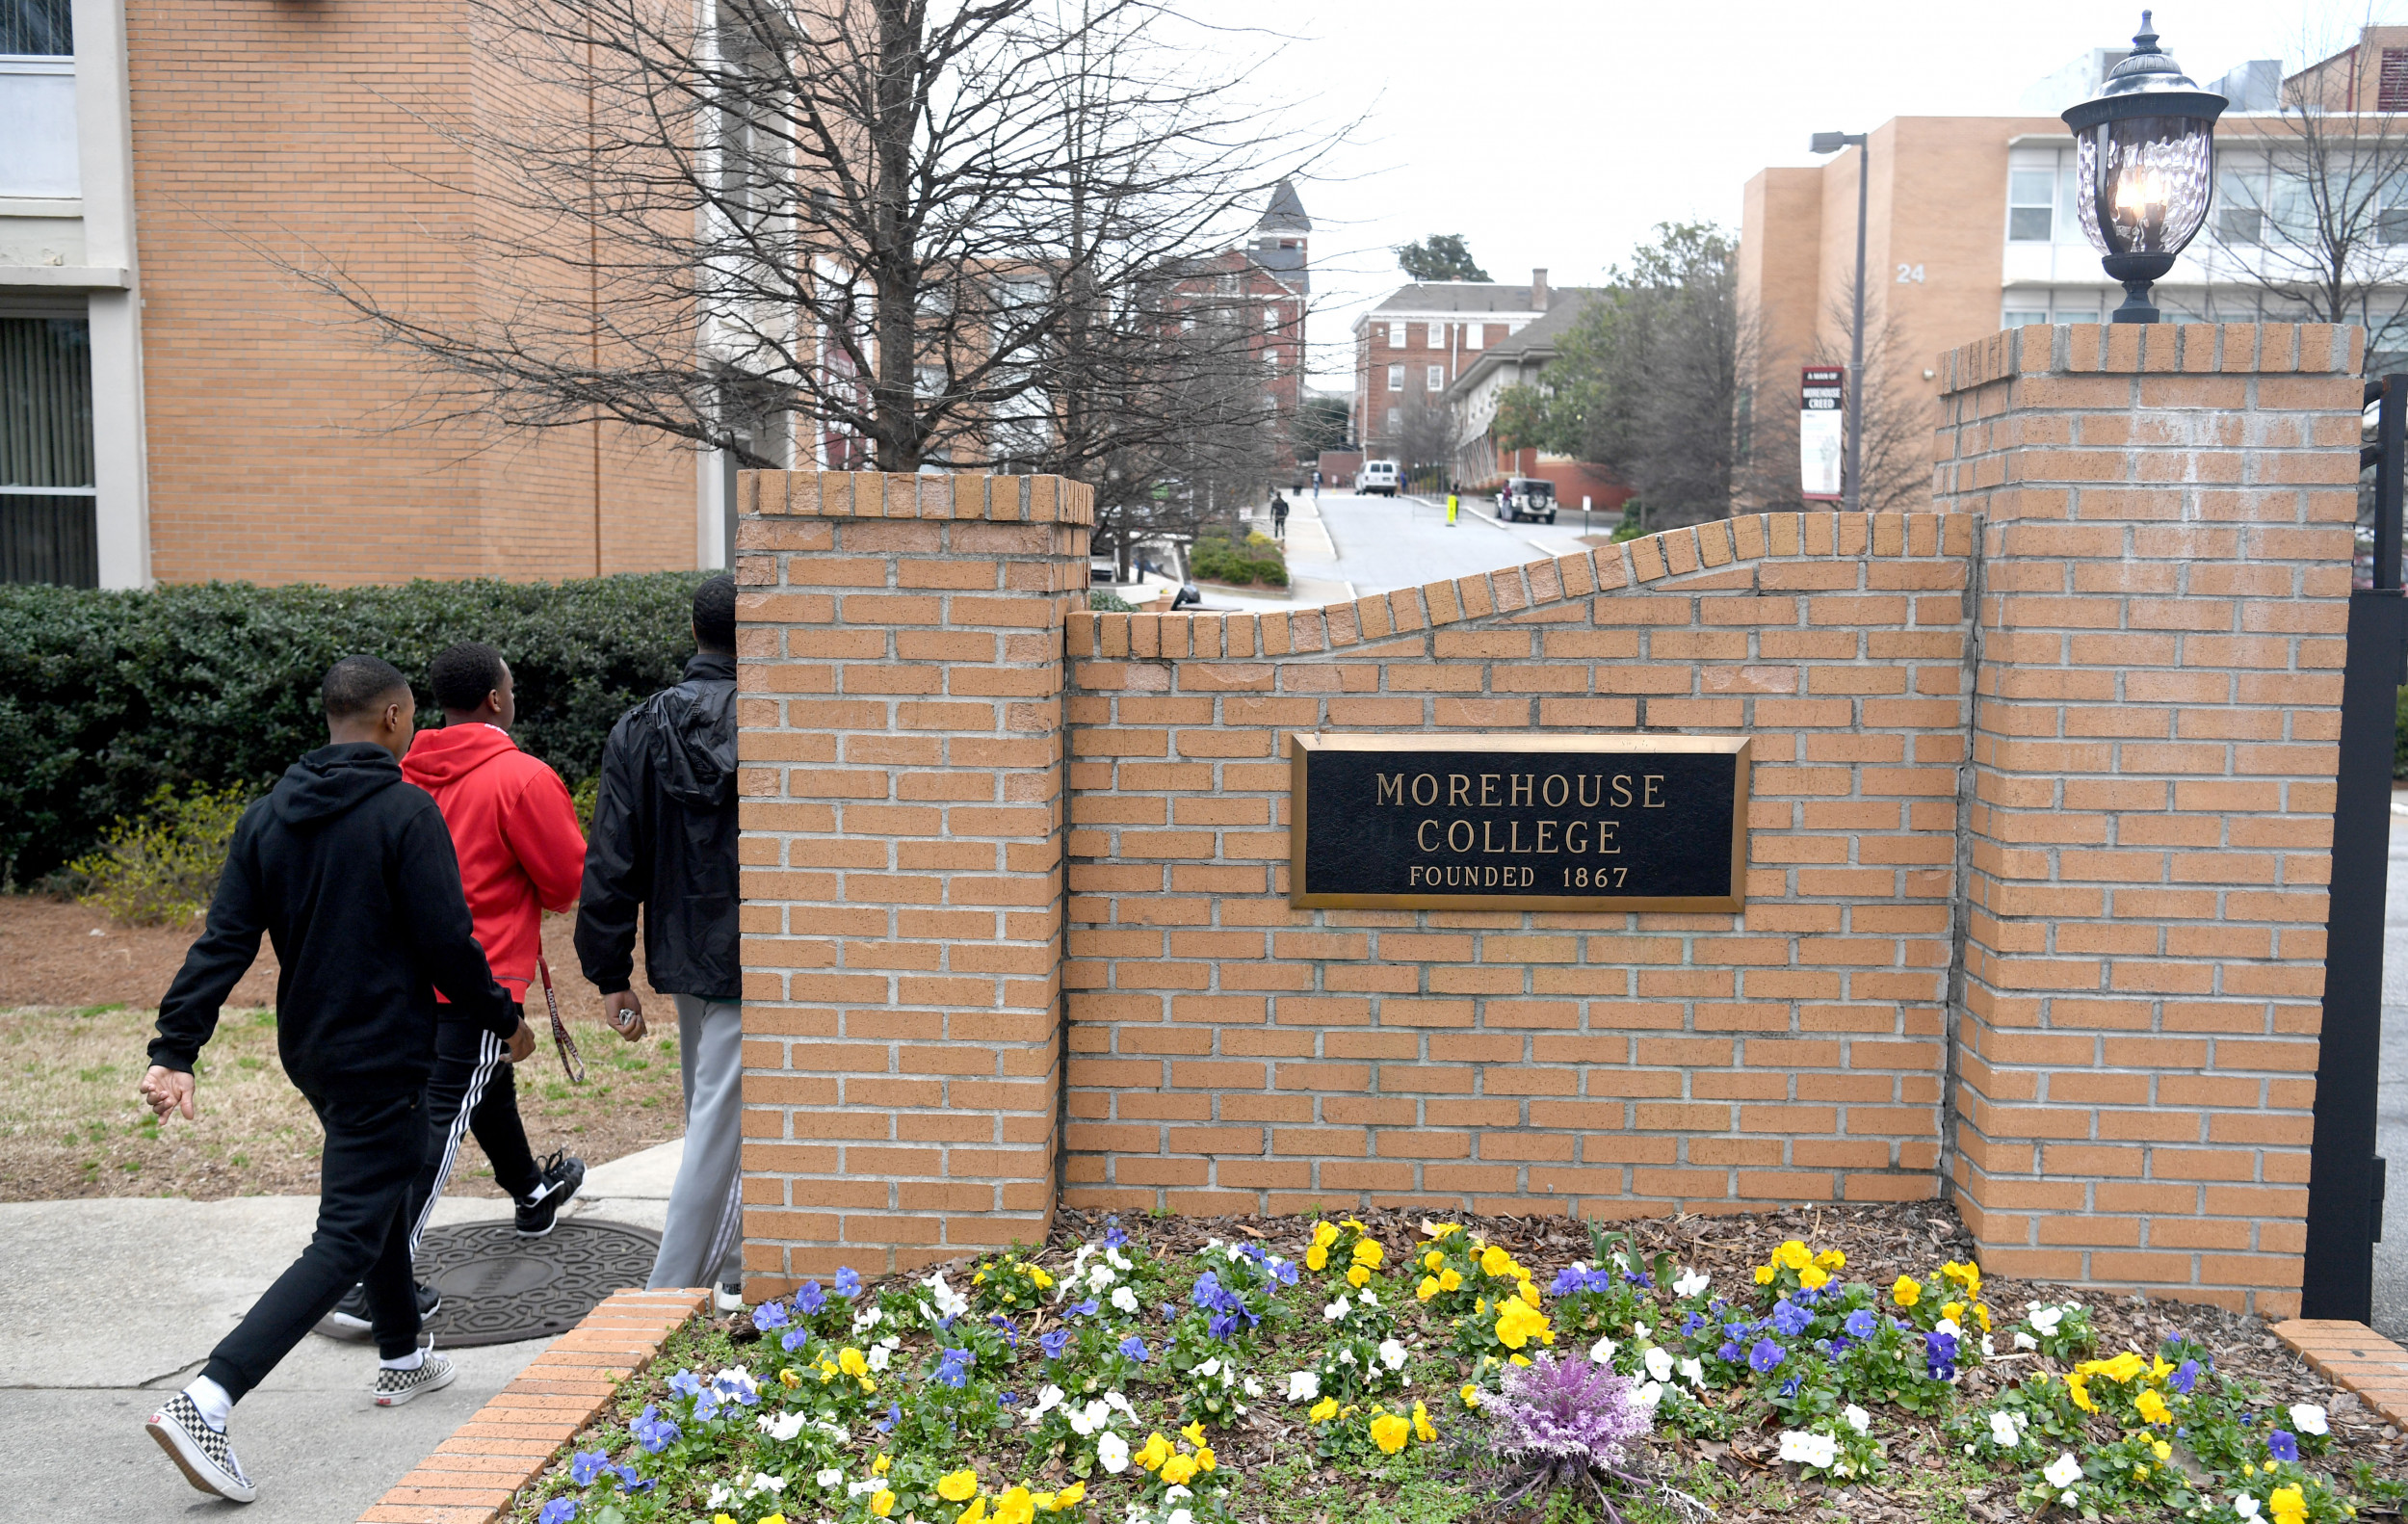 Morehouse College employee on leave after students accuse him on social media of sexual misconduct